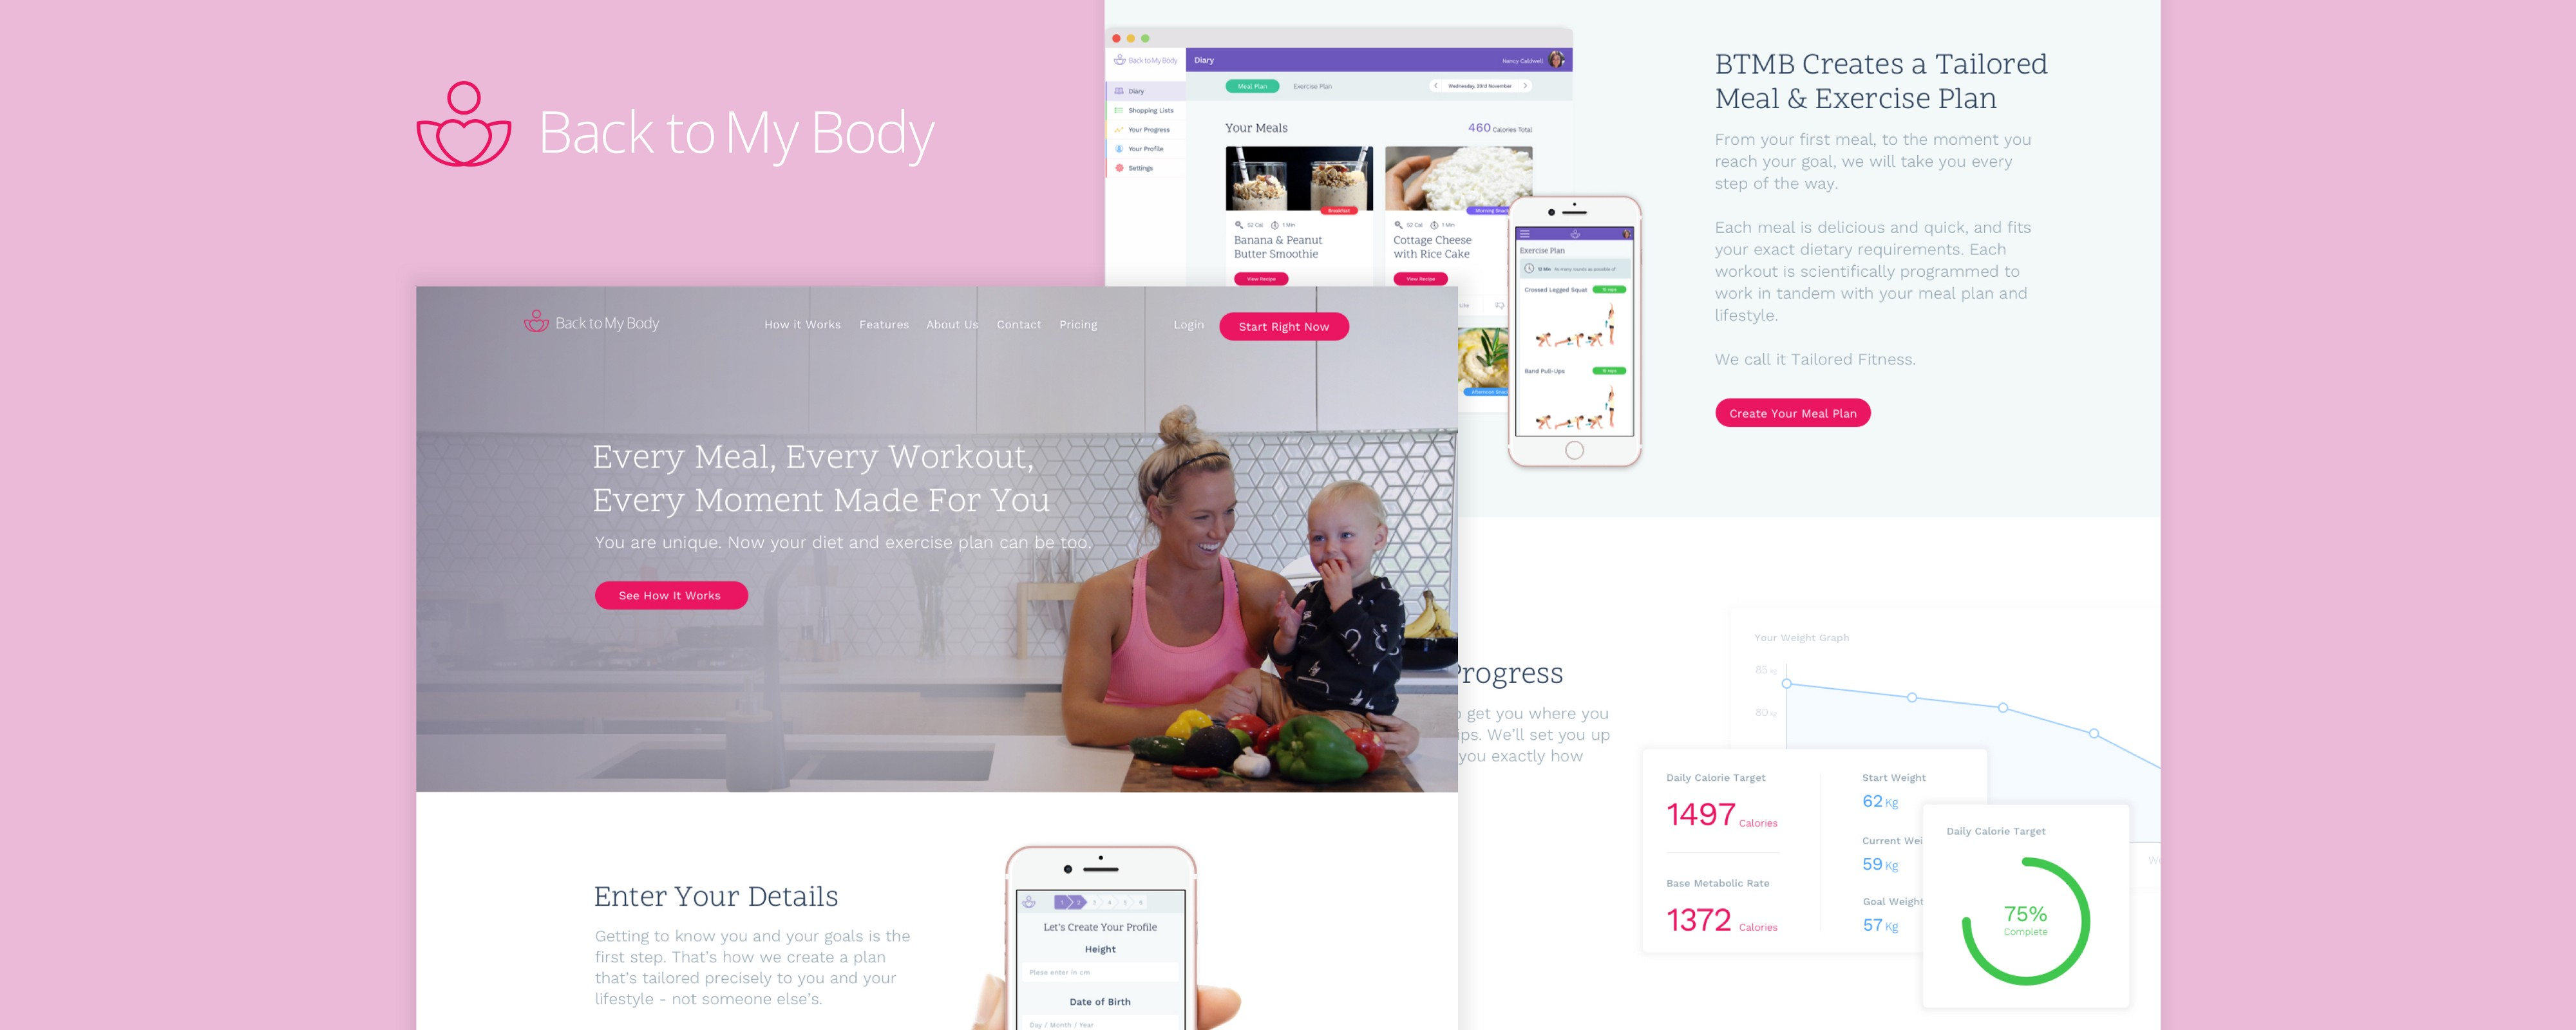 Back To My Body Case Study Back To My Body Diet And Exercise By Alyoop Muzli Design Inspiration